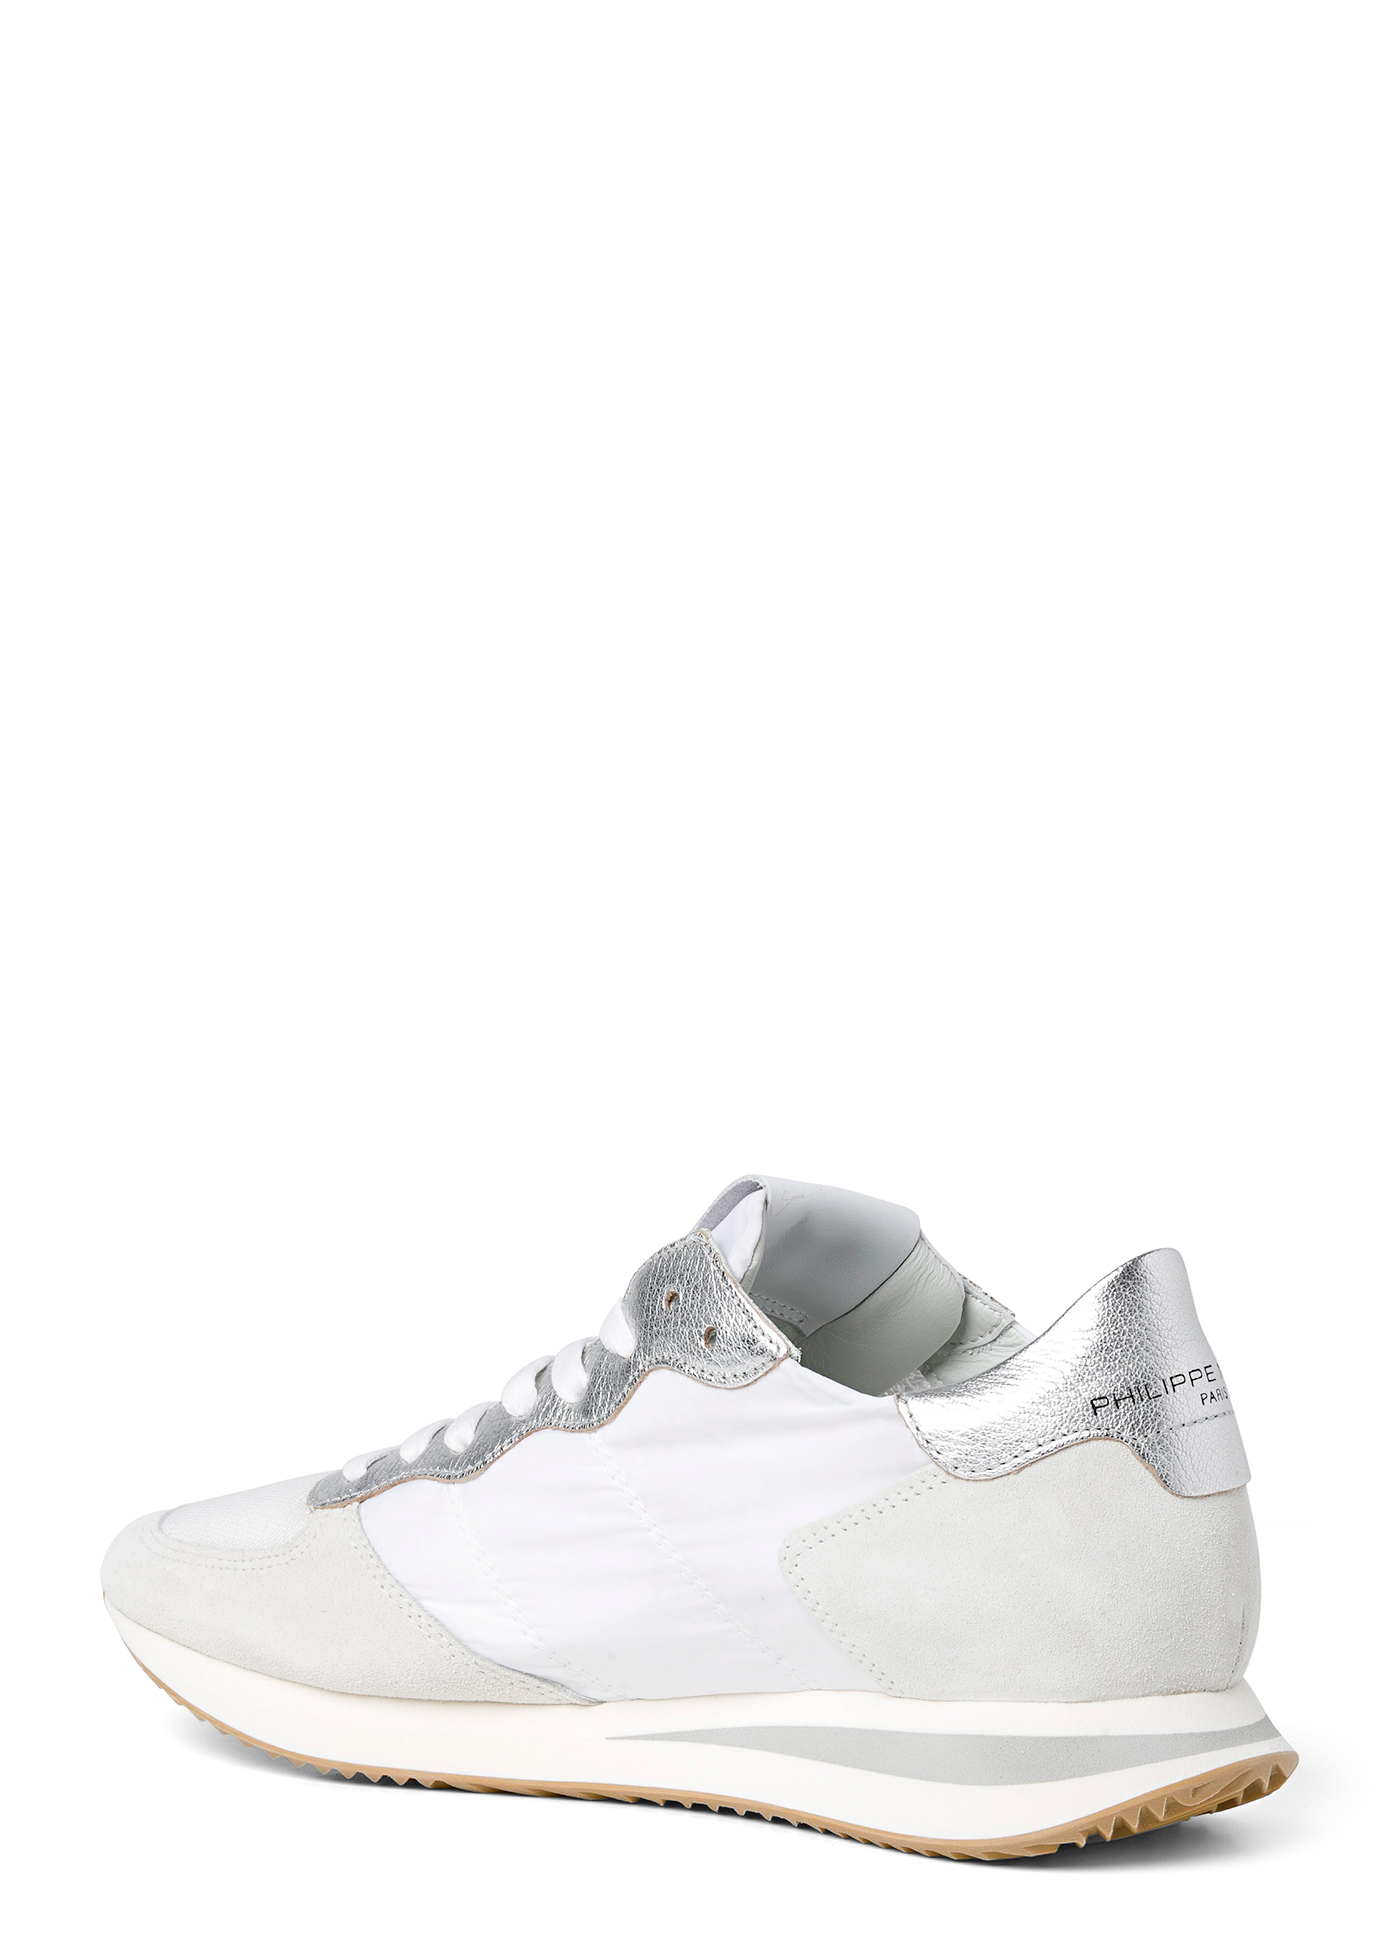 TRPX LOW WOMAN Nylon silber image number 2